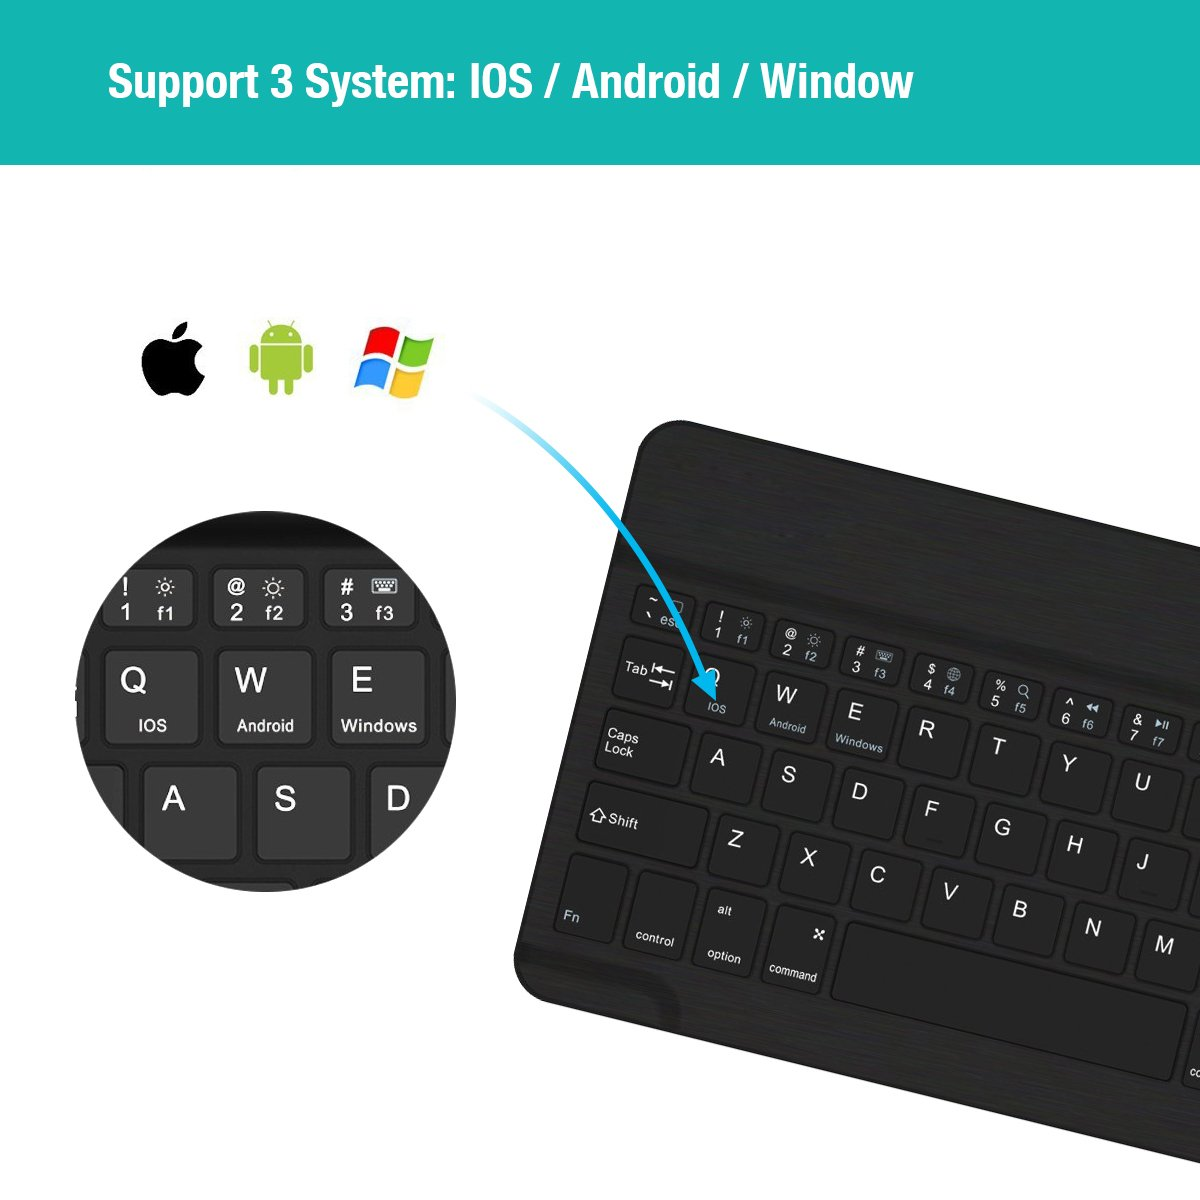 Universal Wireless Keyboard Backlit 7-Color Ultra Slim Portable Zinc Alloy Wireless Bluetooth 3.0 Keyboard for iOS iPad Pro, iPad Air, iPad Mini, Android, MacOS, Windows Tablets PC Smartphone by Smart Tech (Image #3)